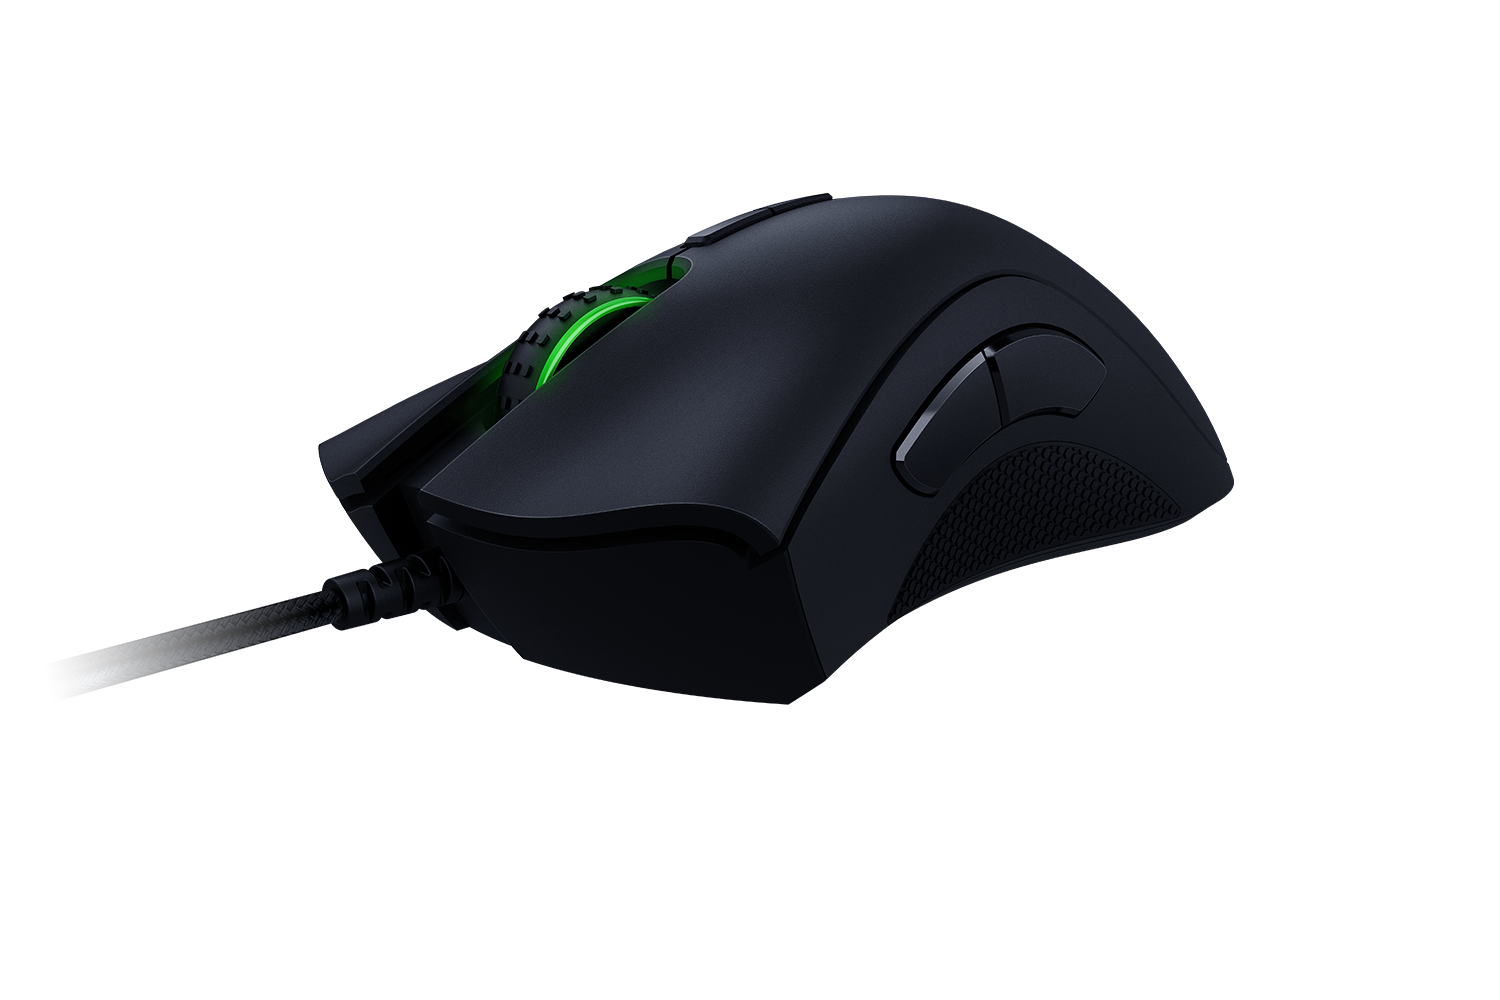 Razer Deathadder Elite.